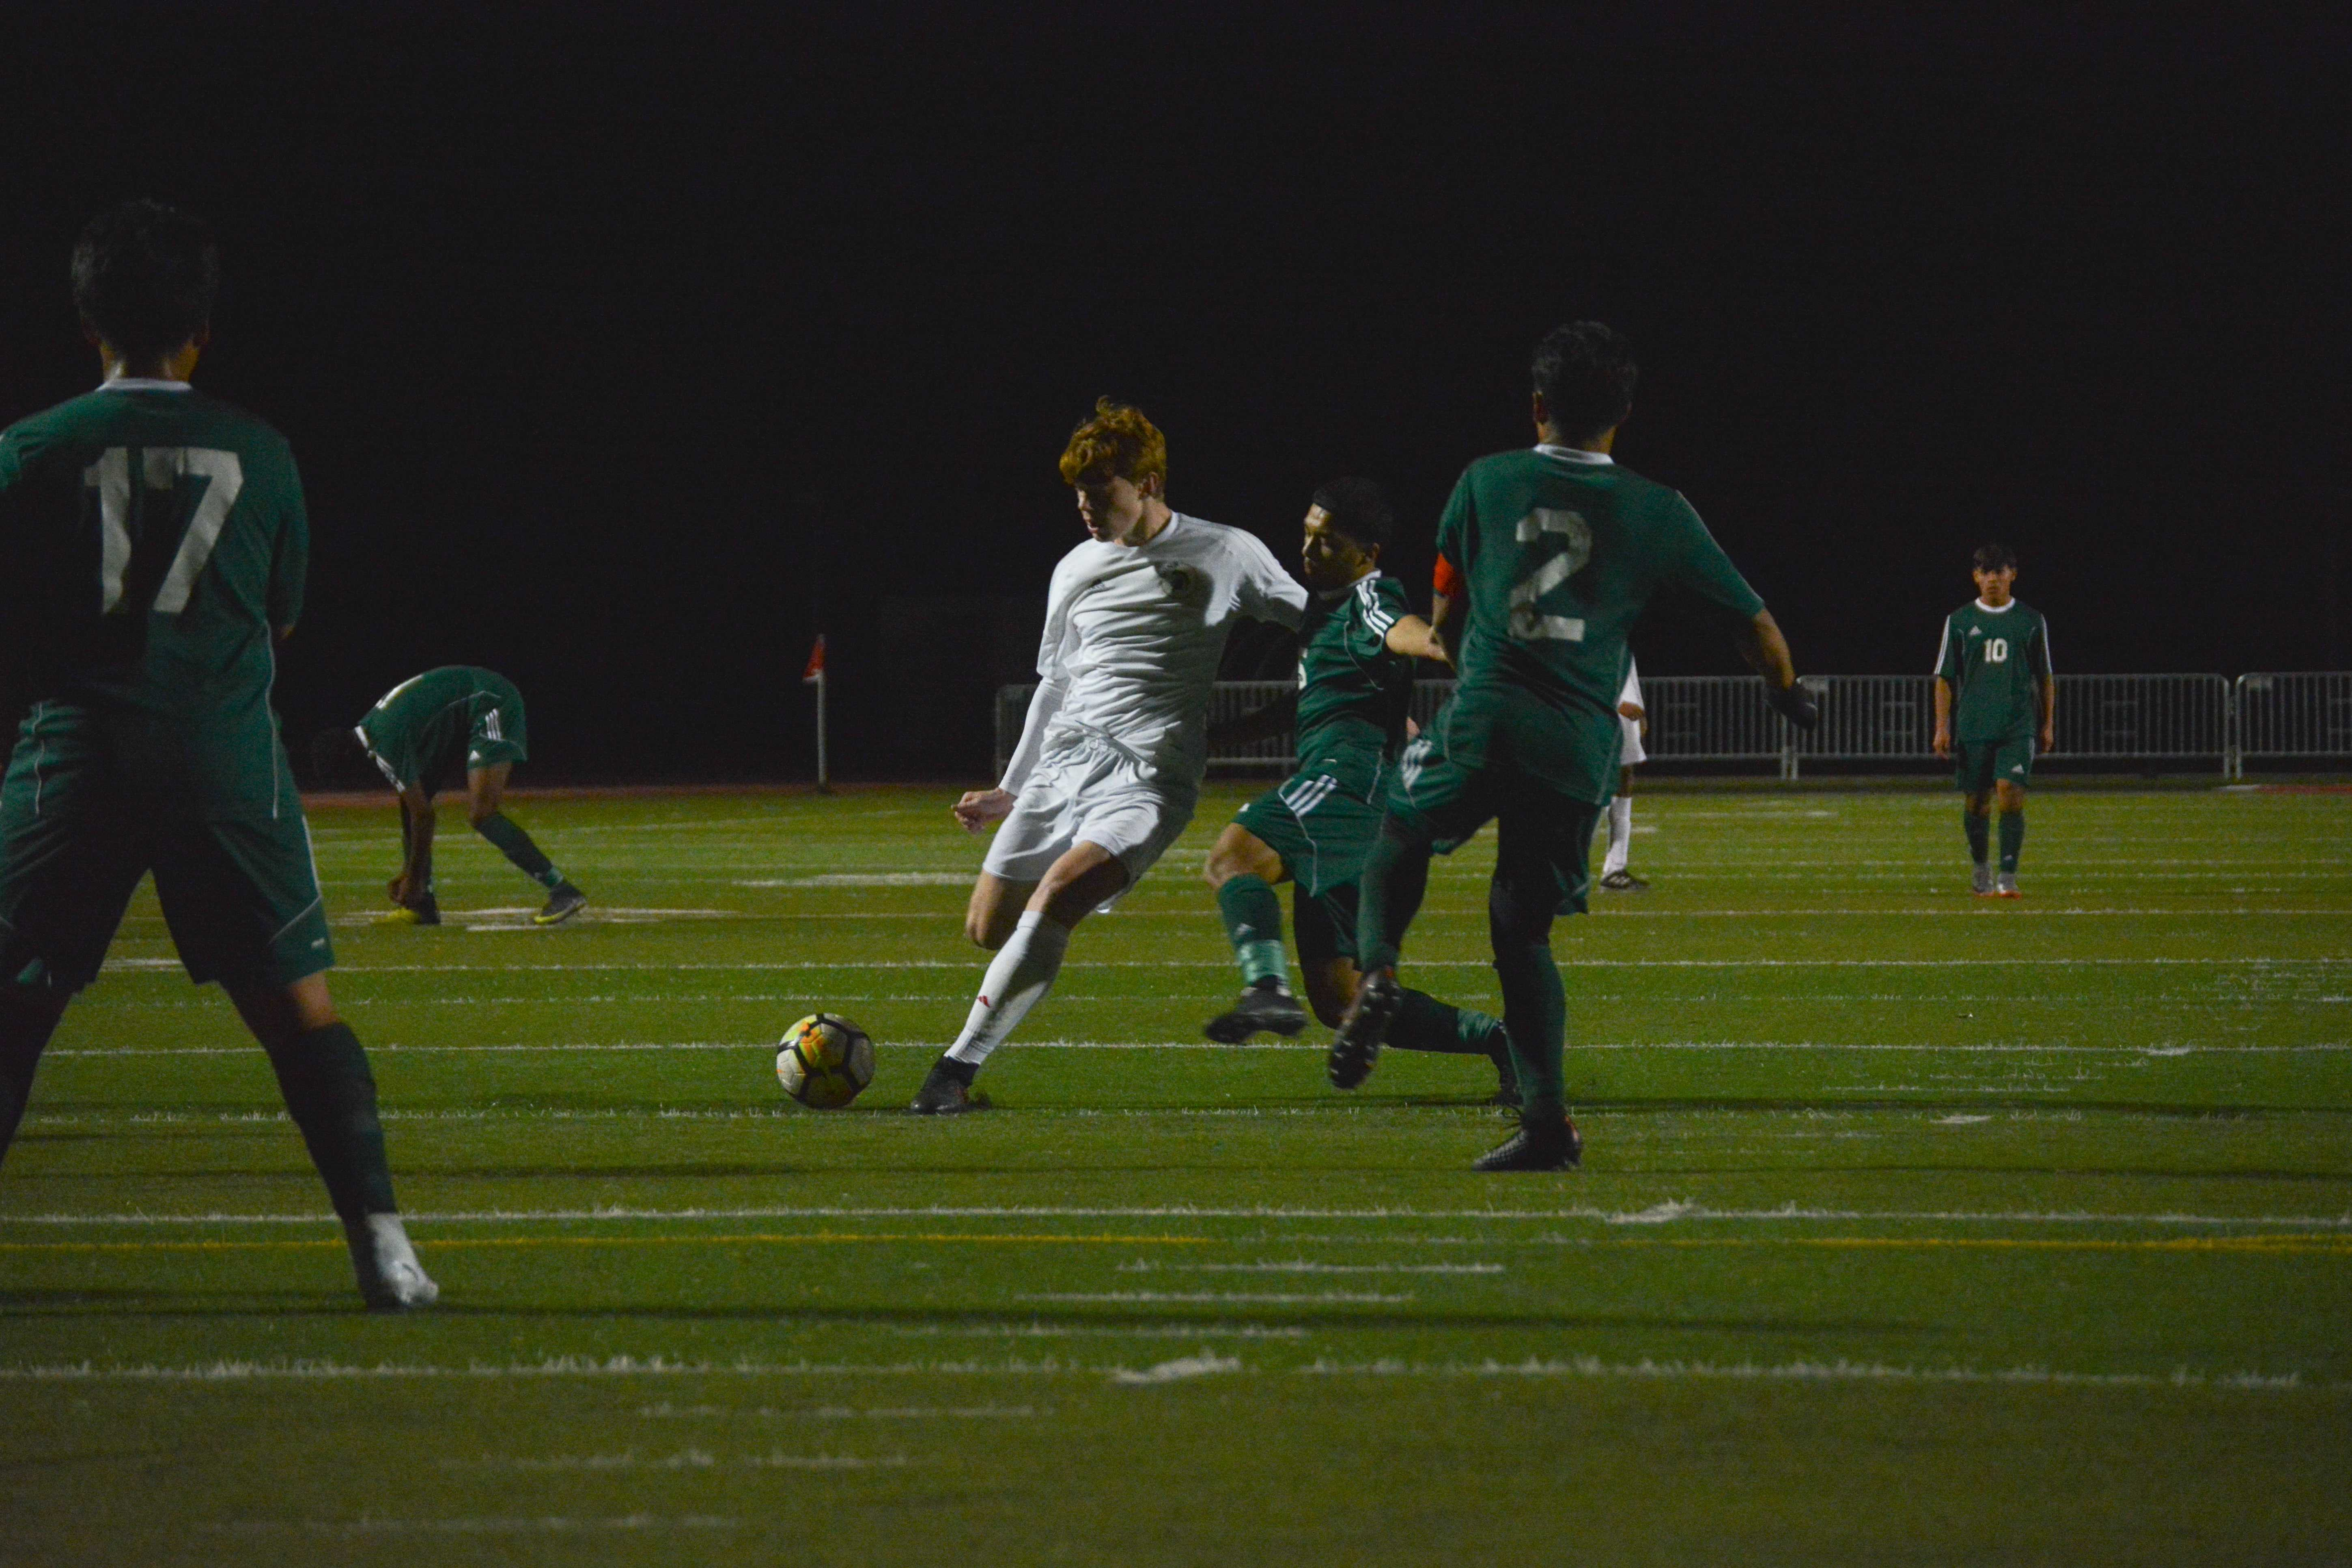 Season Preview: Boys Soccer